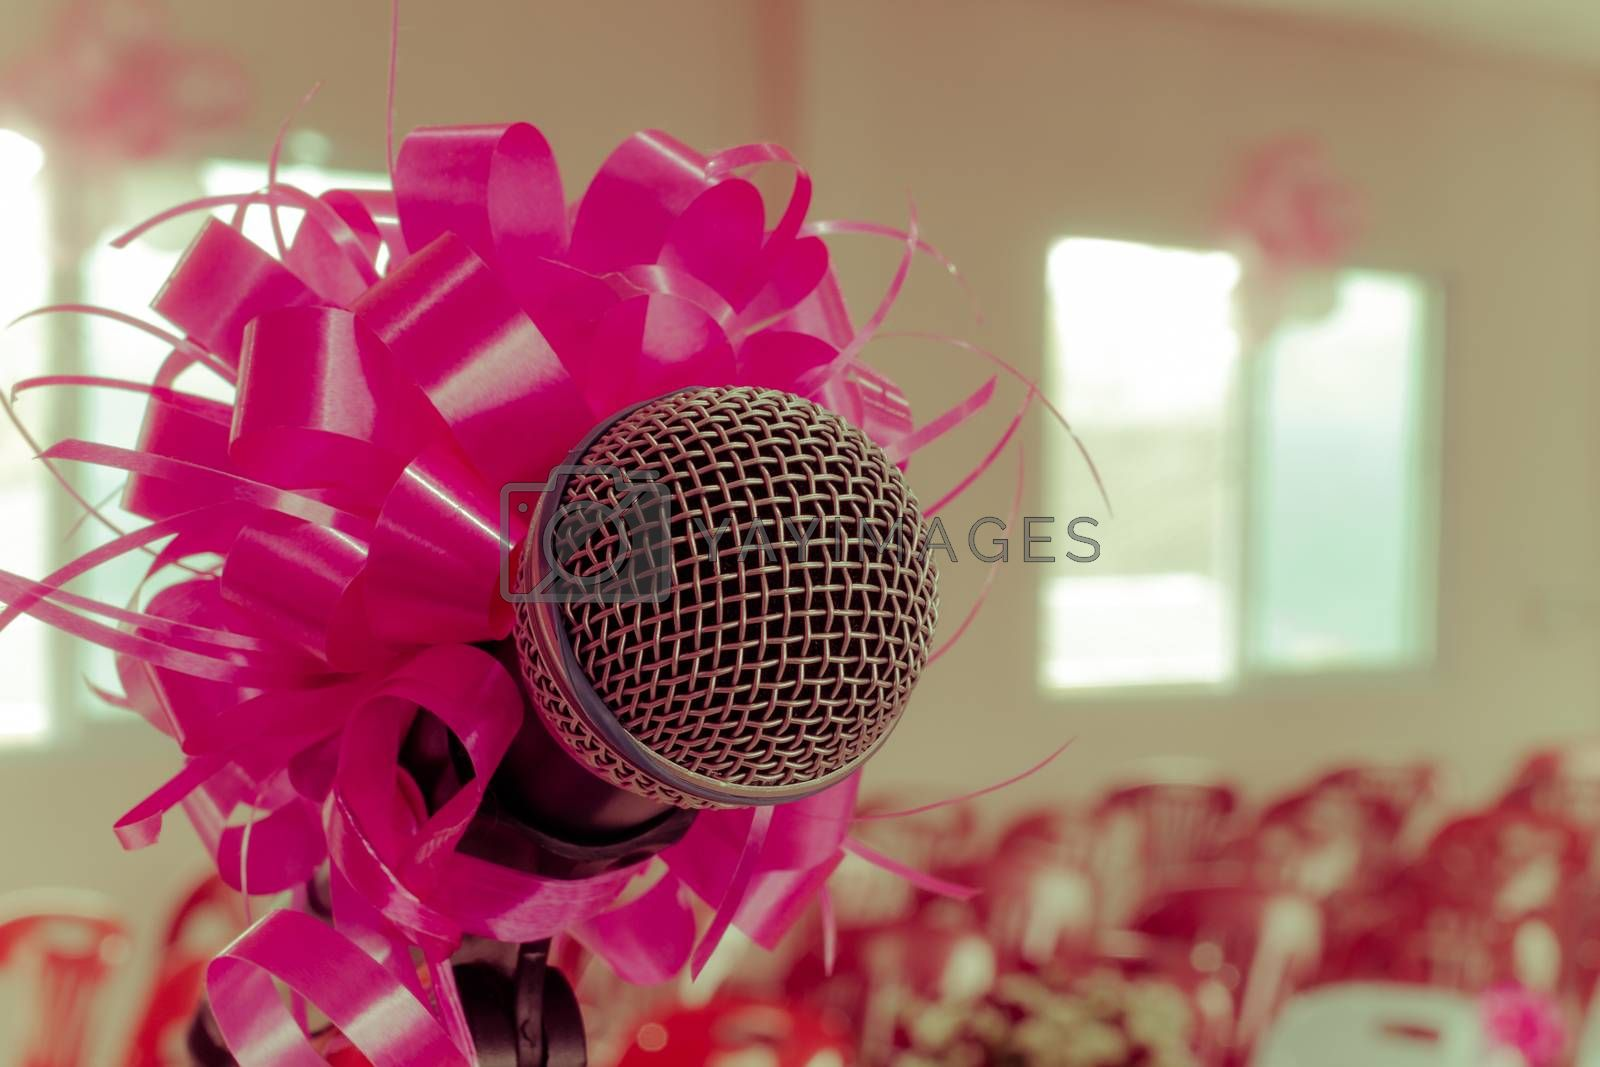 microphone with pink bow and ribbon in wedding ceremony hall, vintage retro style.